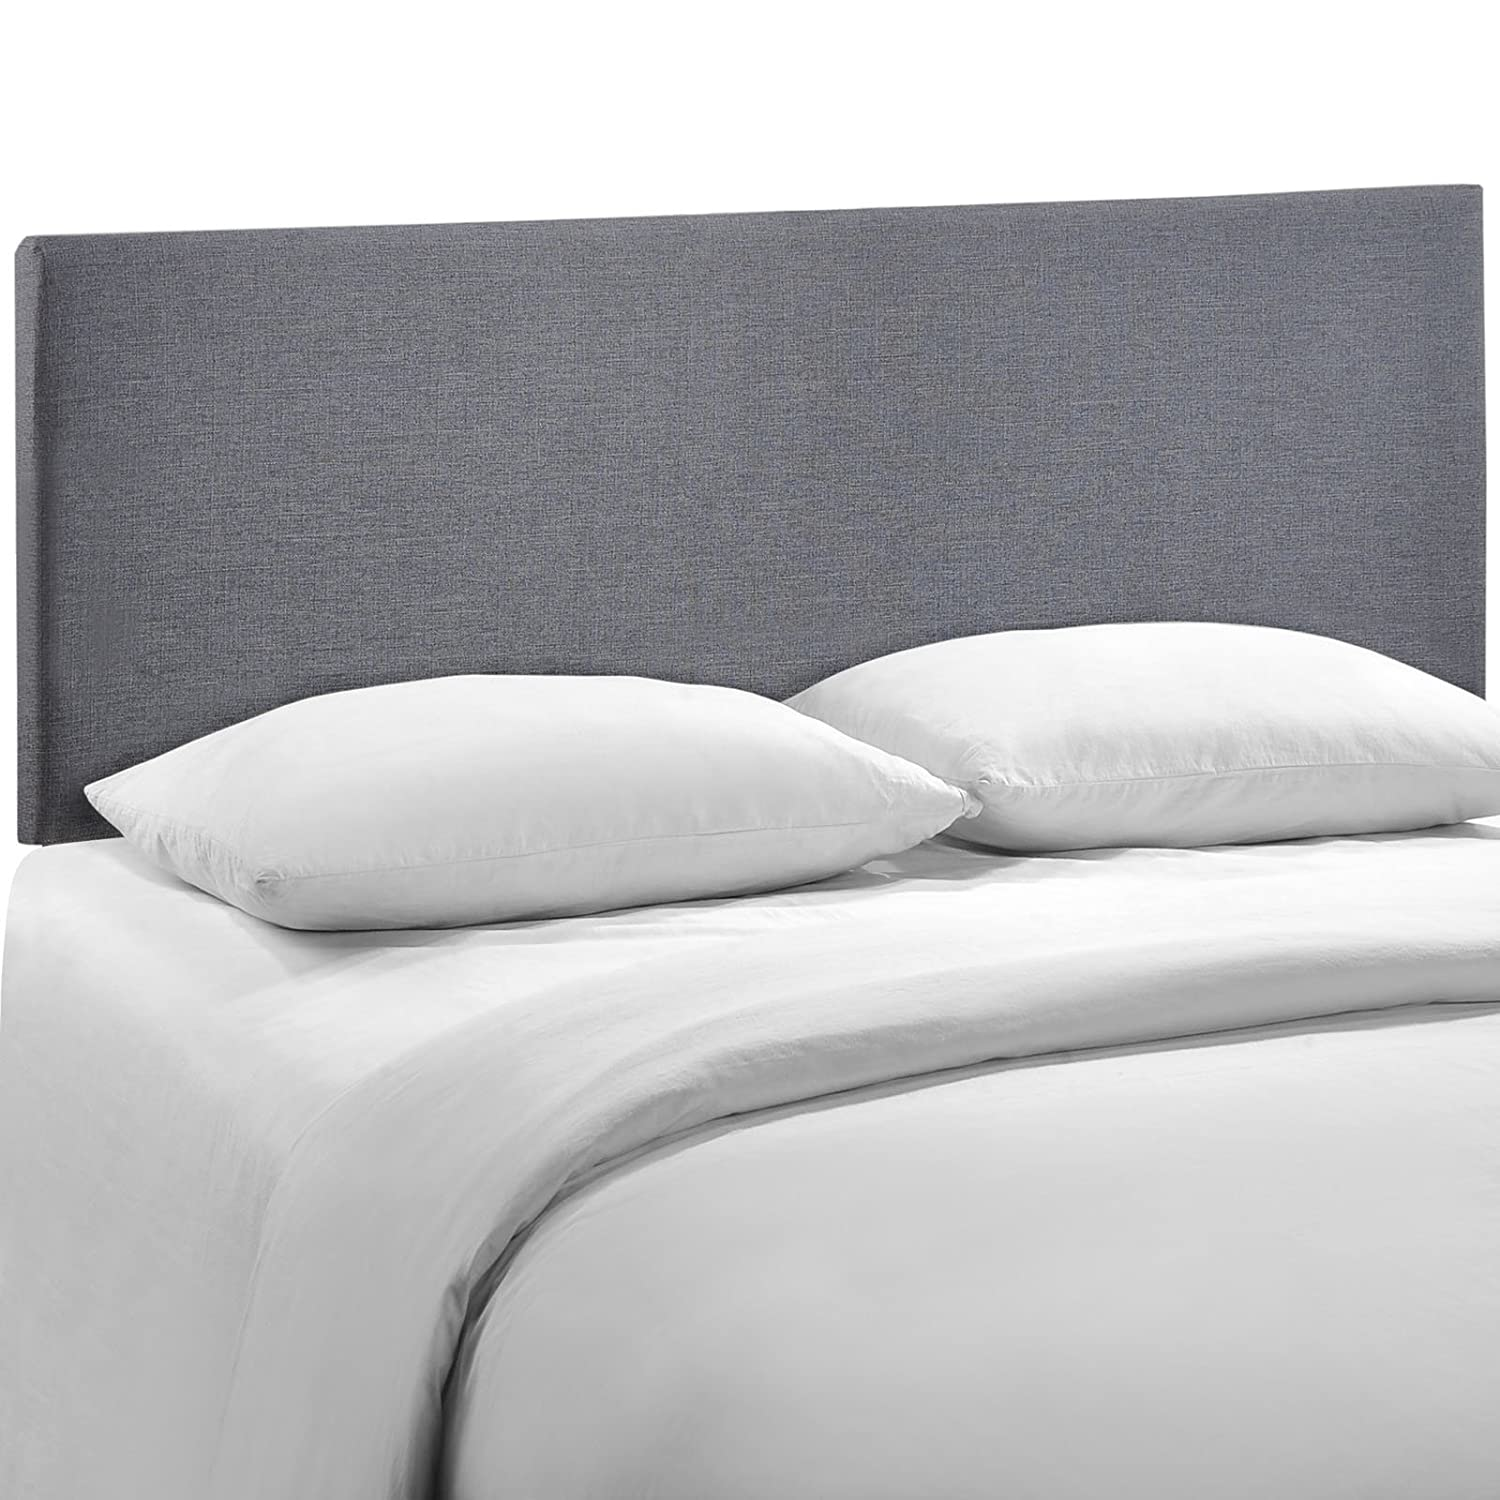 of only footboard tufted also frame headboards big furniture and platform king queen ideas beautiful plain size wingback leather twin upholstered homesense rails headboard girls with full tall storage fabric canada for gray bed interesting padded gallery white bedroom metal